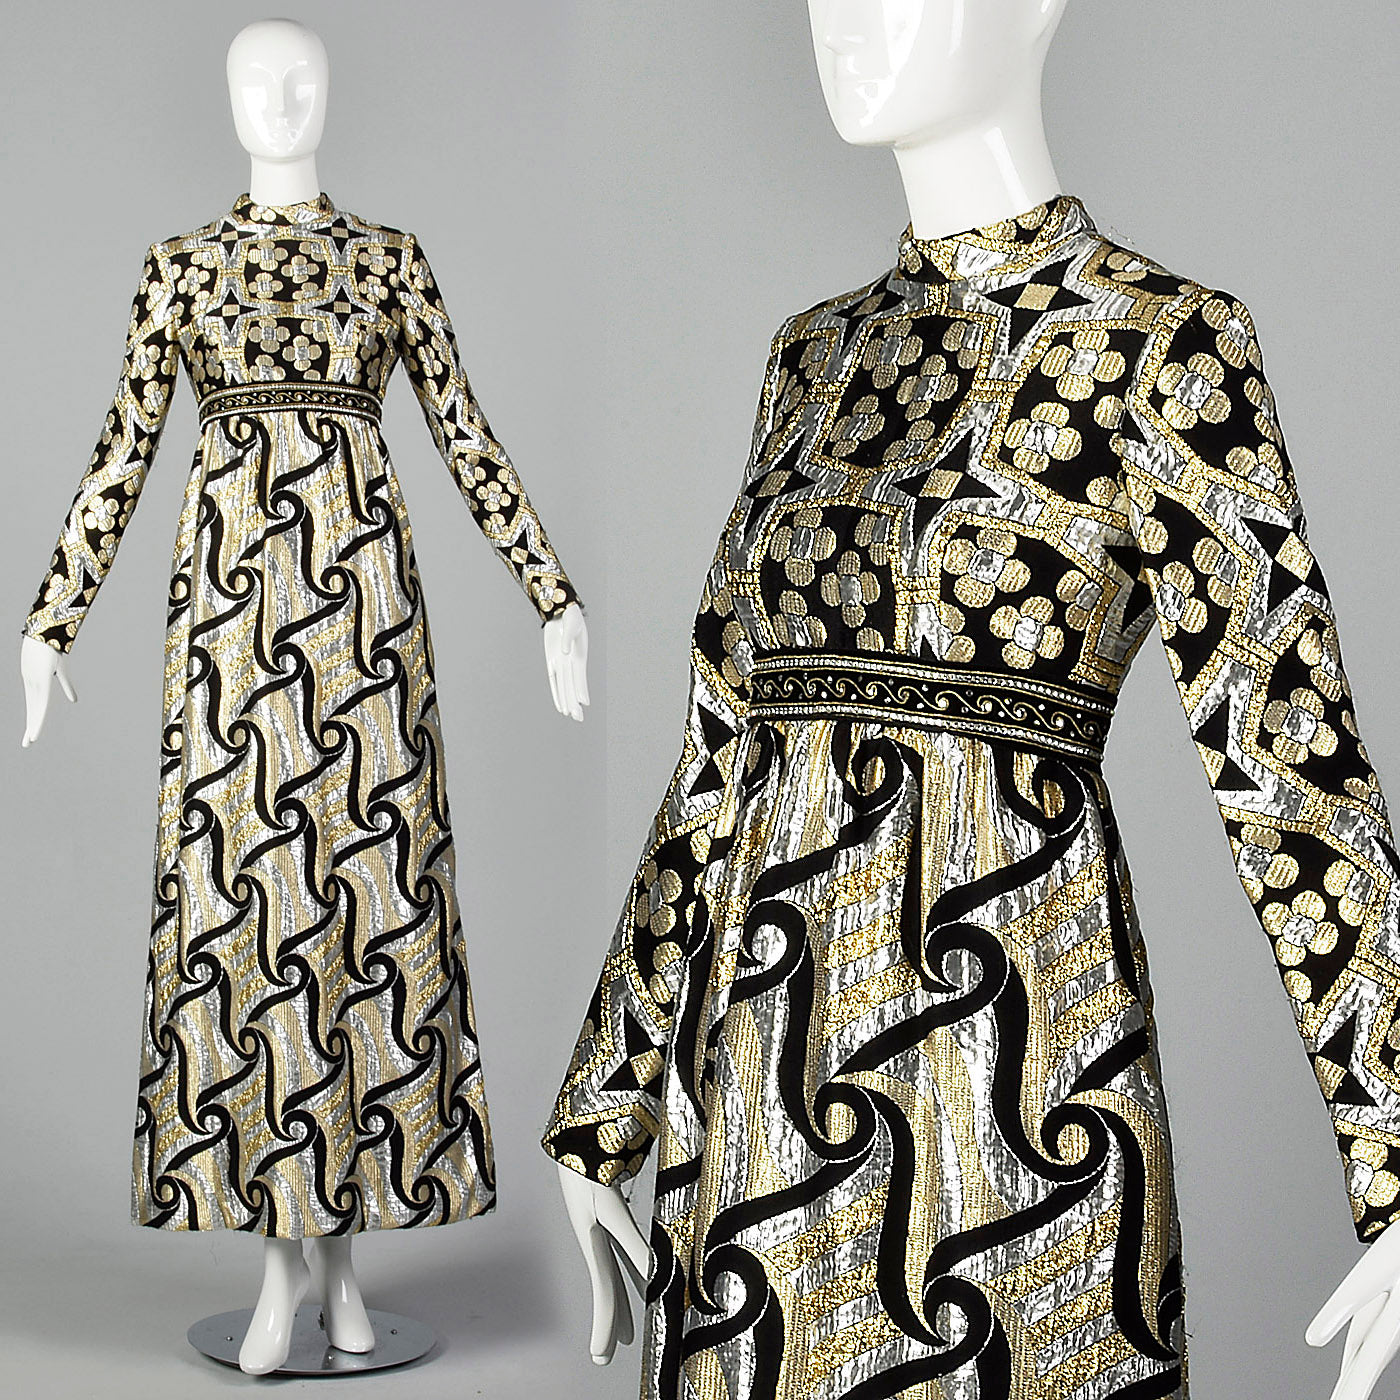 1970s Silver and Gold Metallic Dress